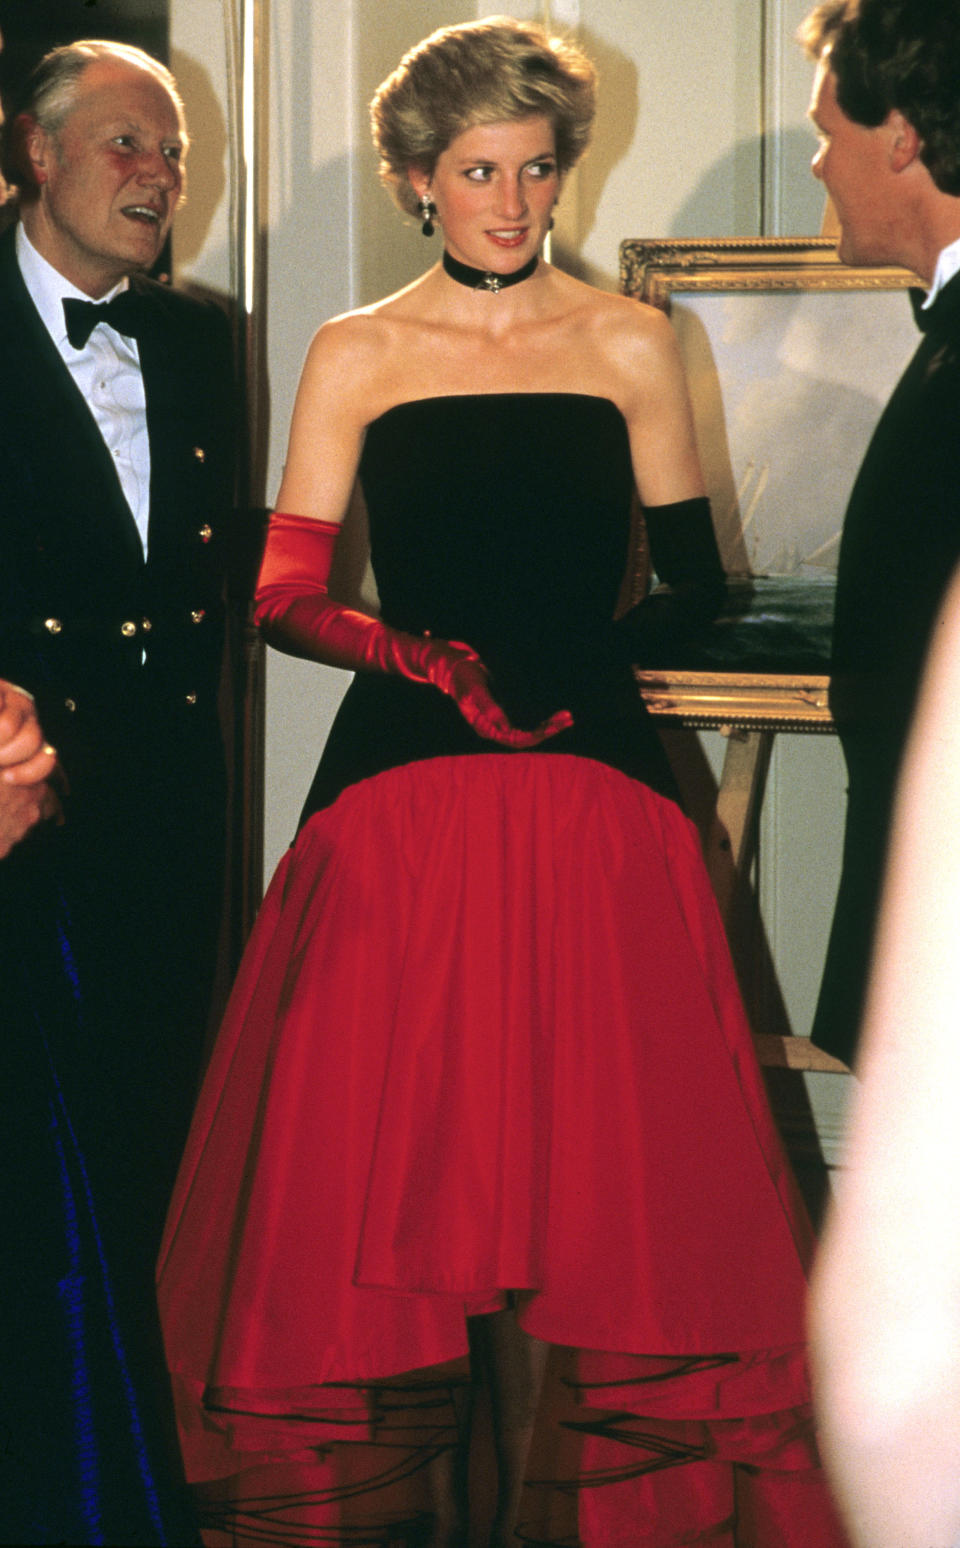 Princess Diana wore one red glove and one back glove while attending the America's Cup Ball at the Grosvenor House hotel in London, on Sept. 1, 1986. The gloves complemented her Murray Arbeid flamenco dress. <em>(Photo by Anwar Hussein/Getty Images)</em>